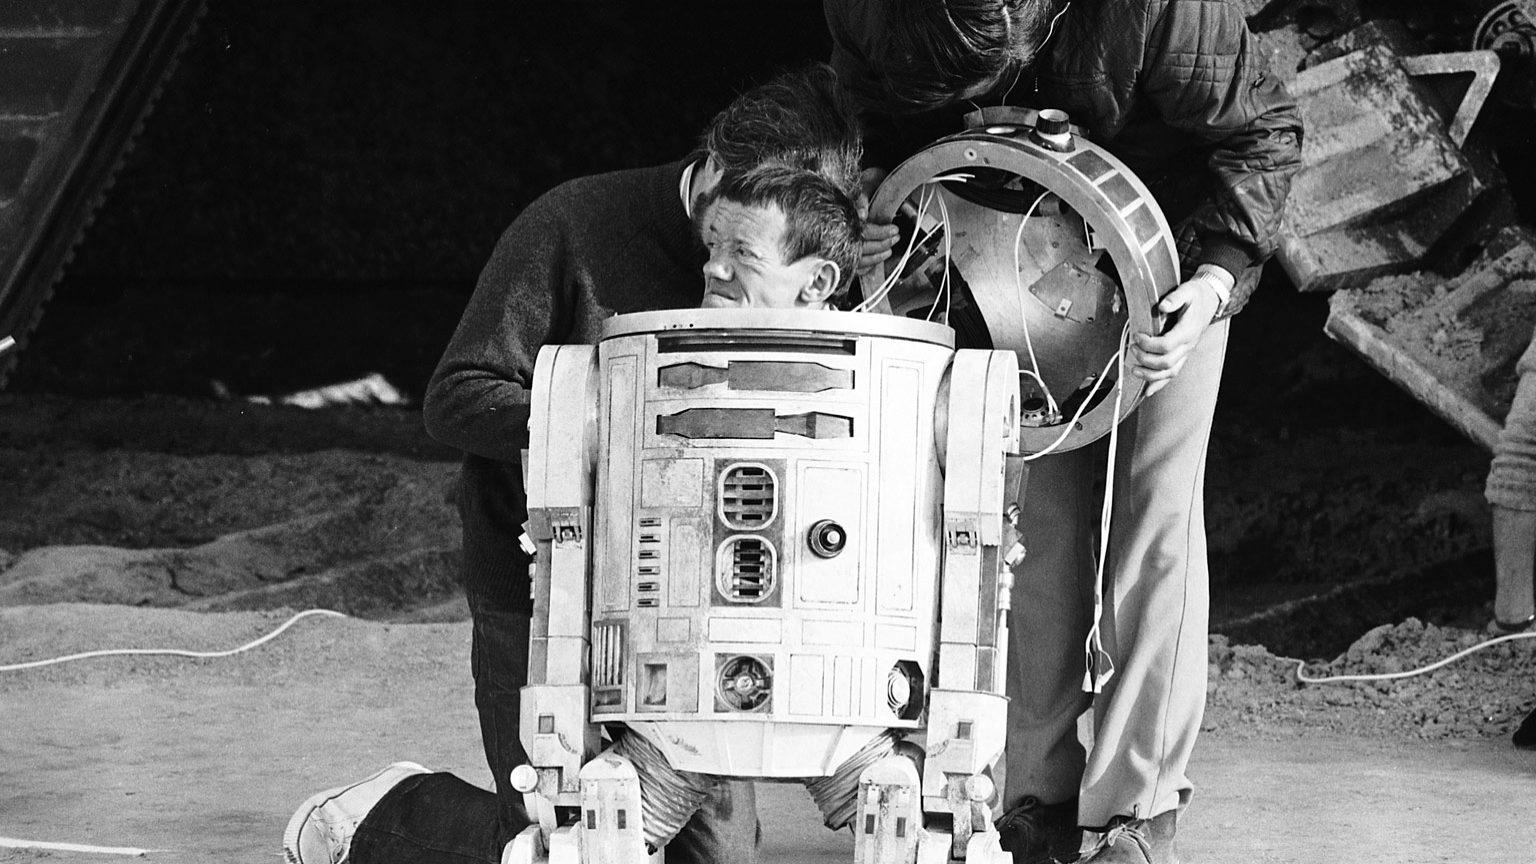 kenny baker bw 1536x864 361826315708 10 Things You Didn't Know About Star Wars: Episode IV - A New Hope